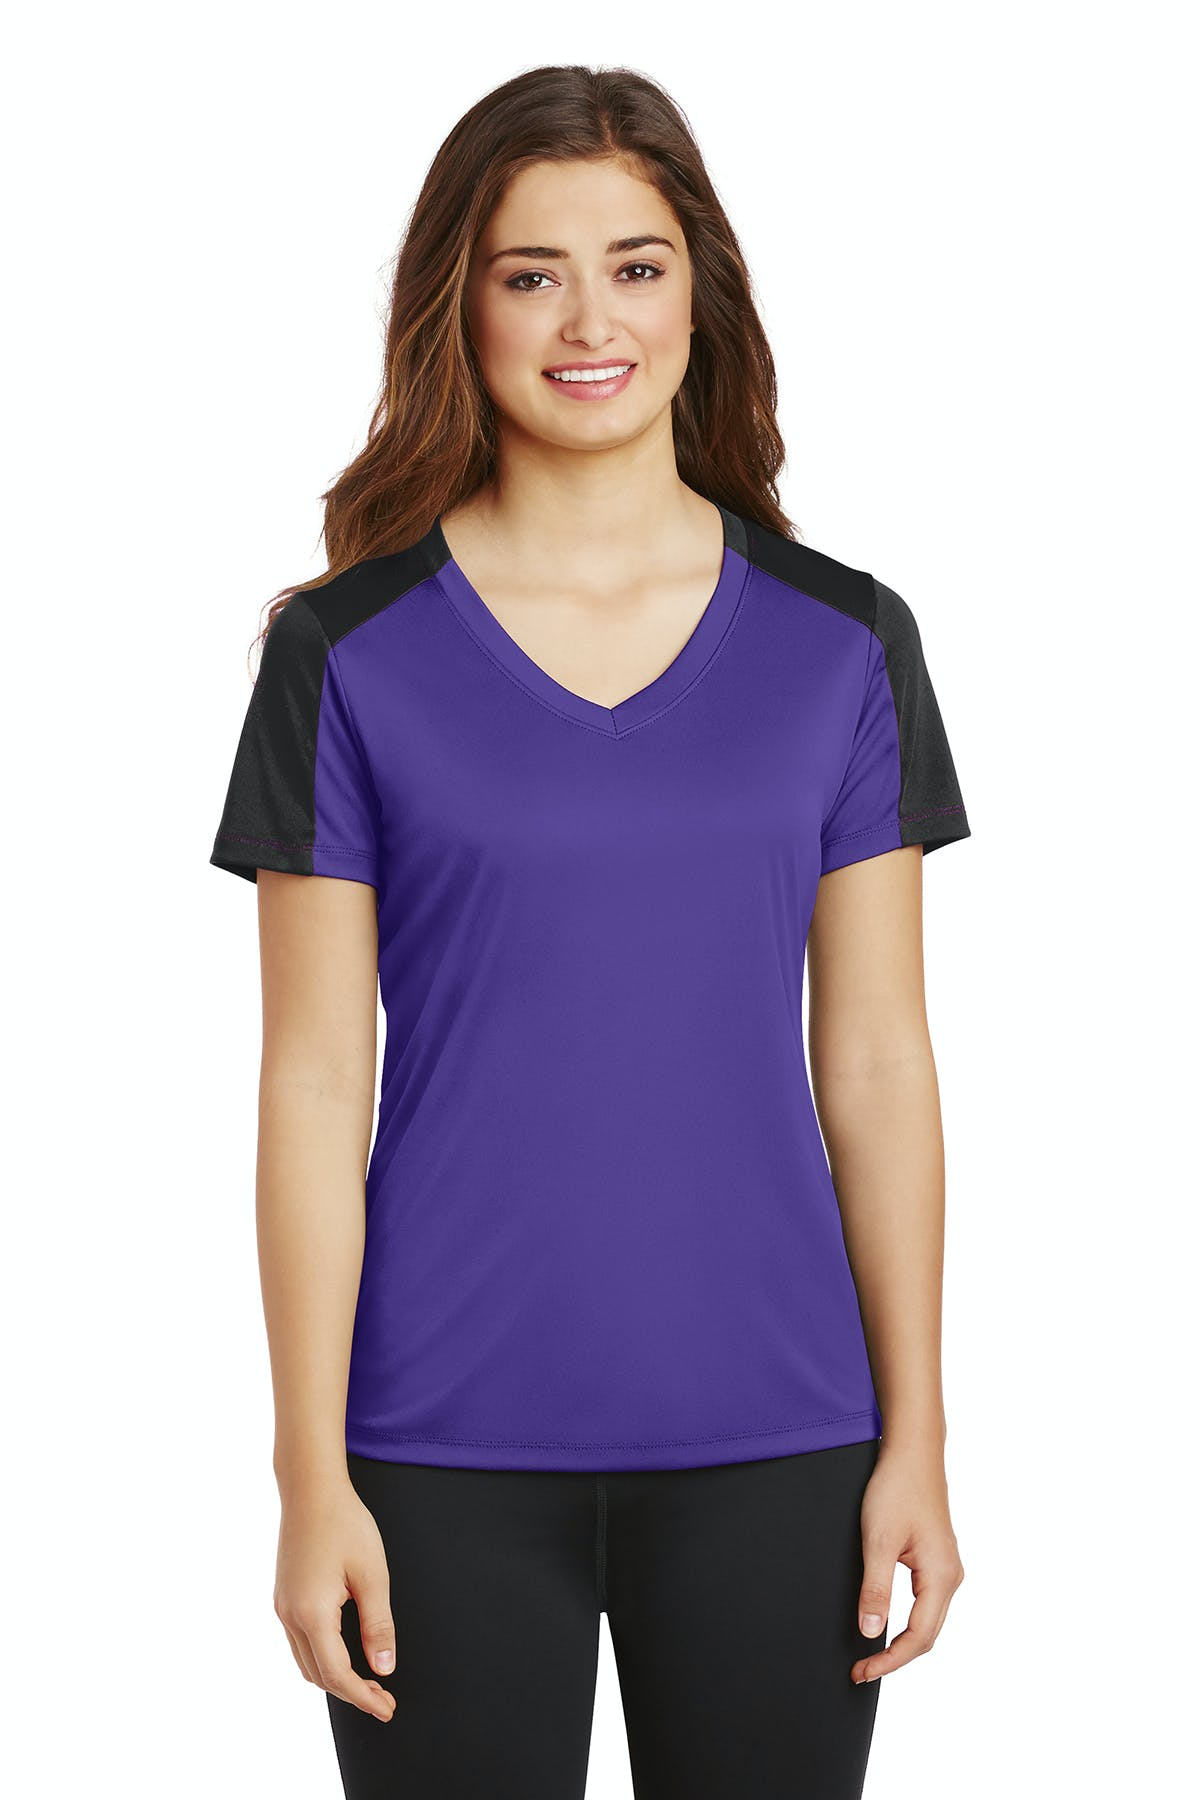 Sport-Tek® Ladies PosiCharge® Competitor™ Sleeve-Blocked V-Neck Tee - sold by PRINT CITY GRAPHICS, INC